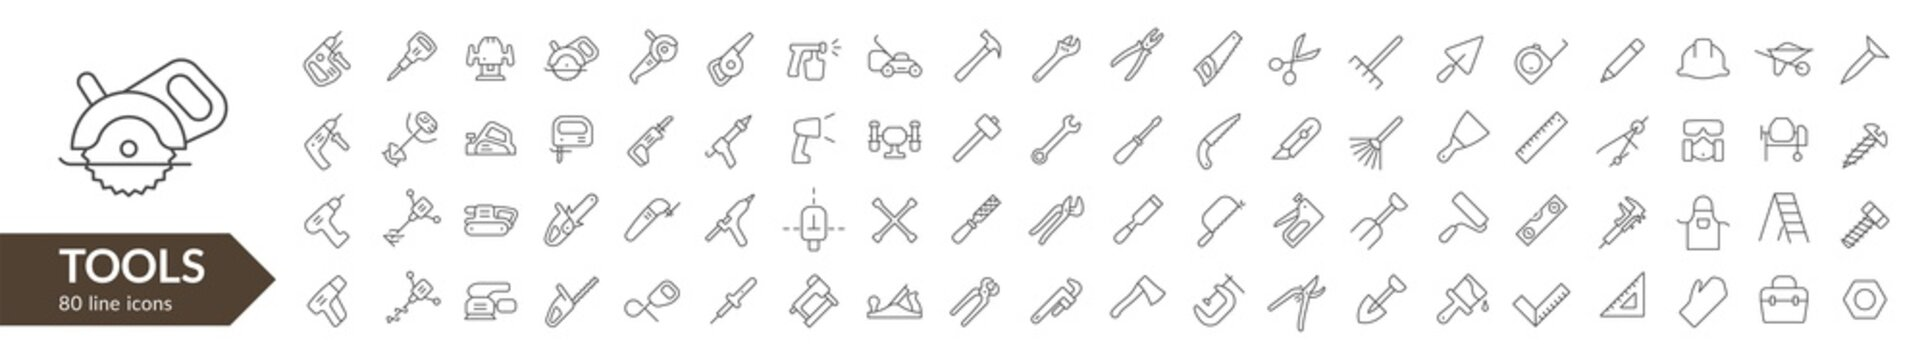 Tools line icon set. Isolated signs on white background. Vector illustration. Collection